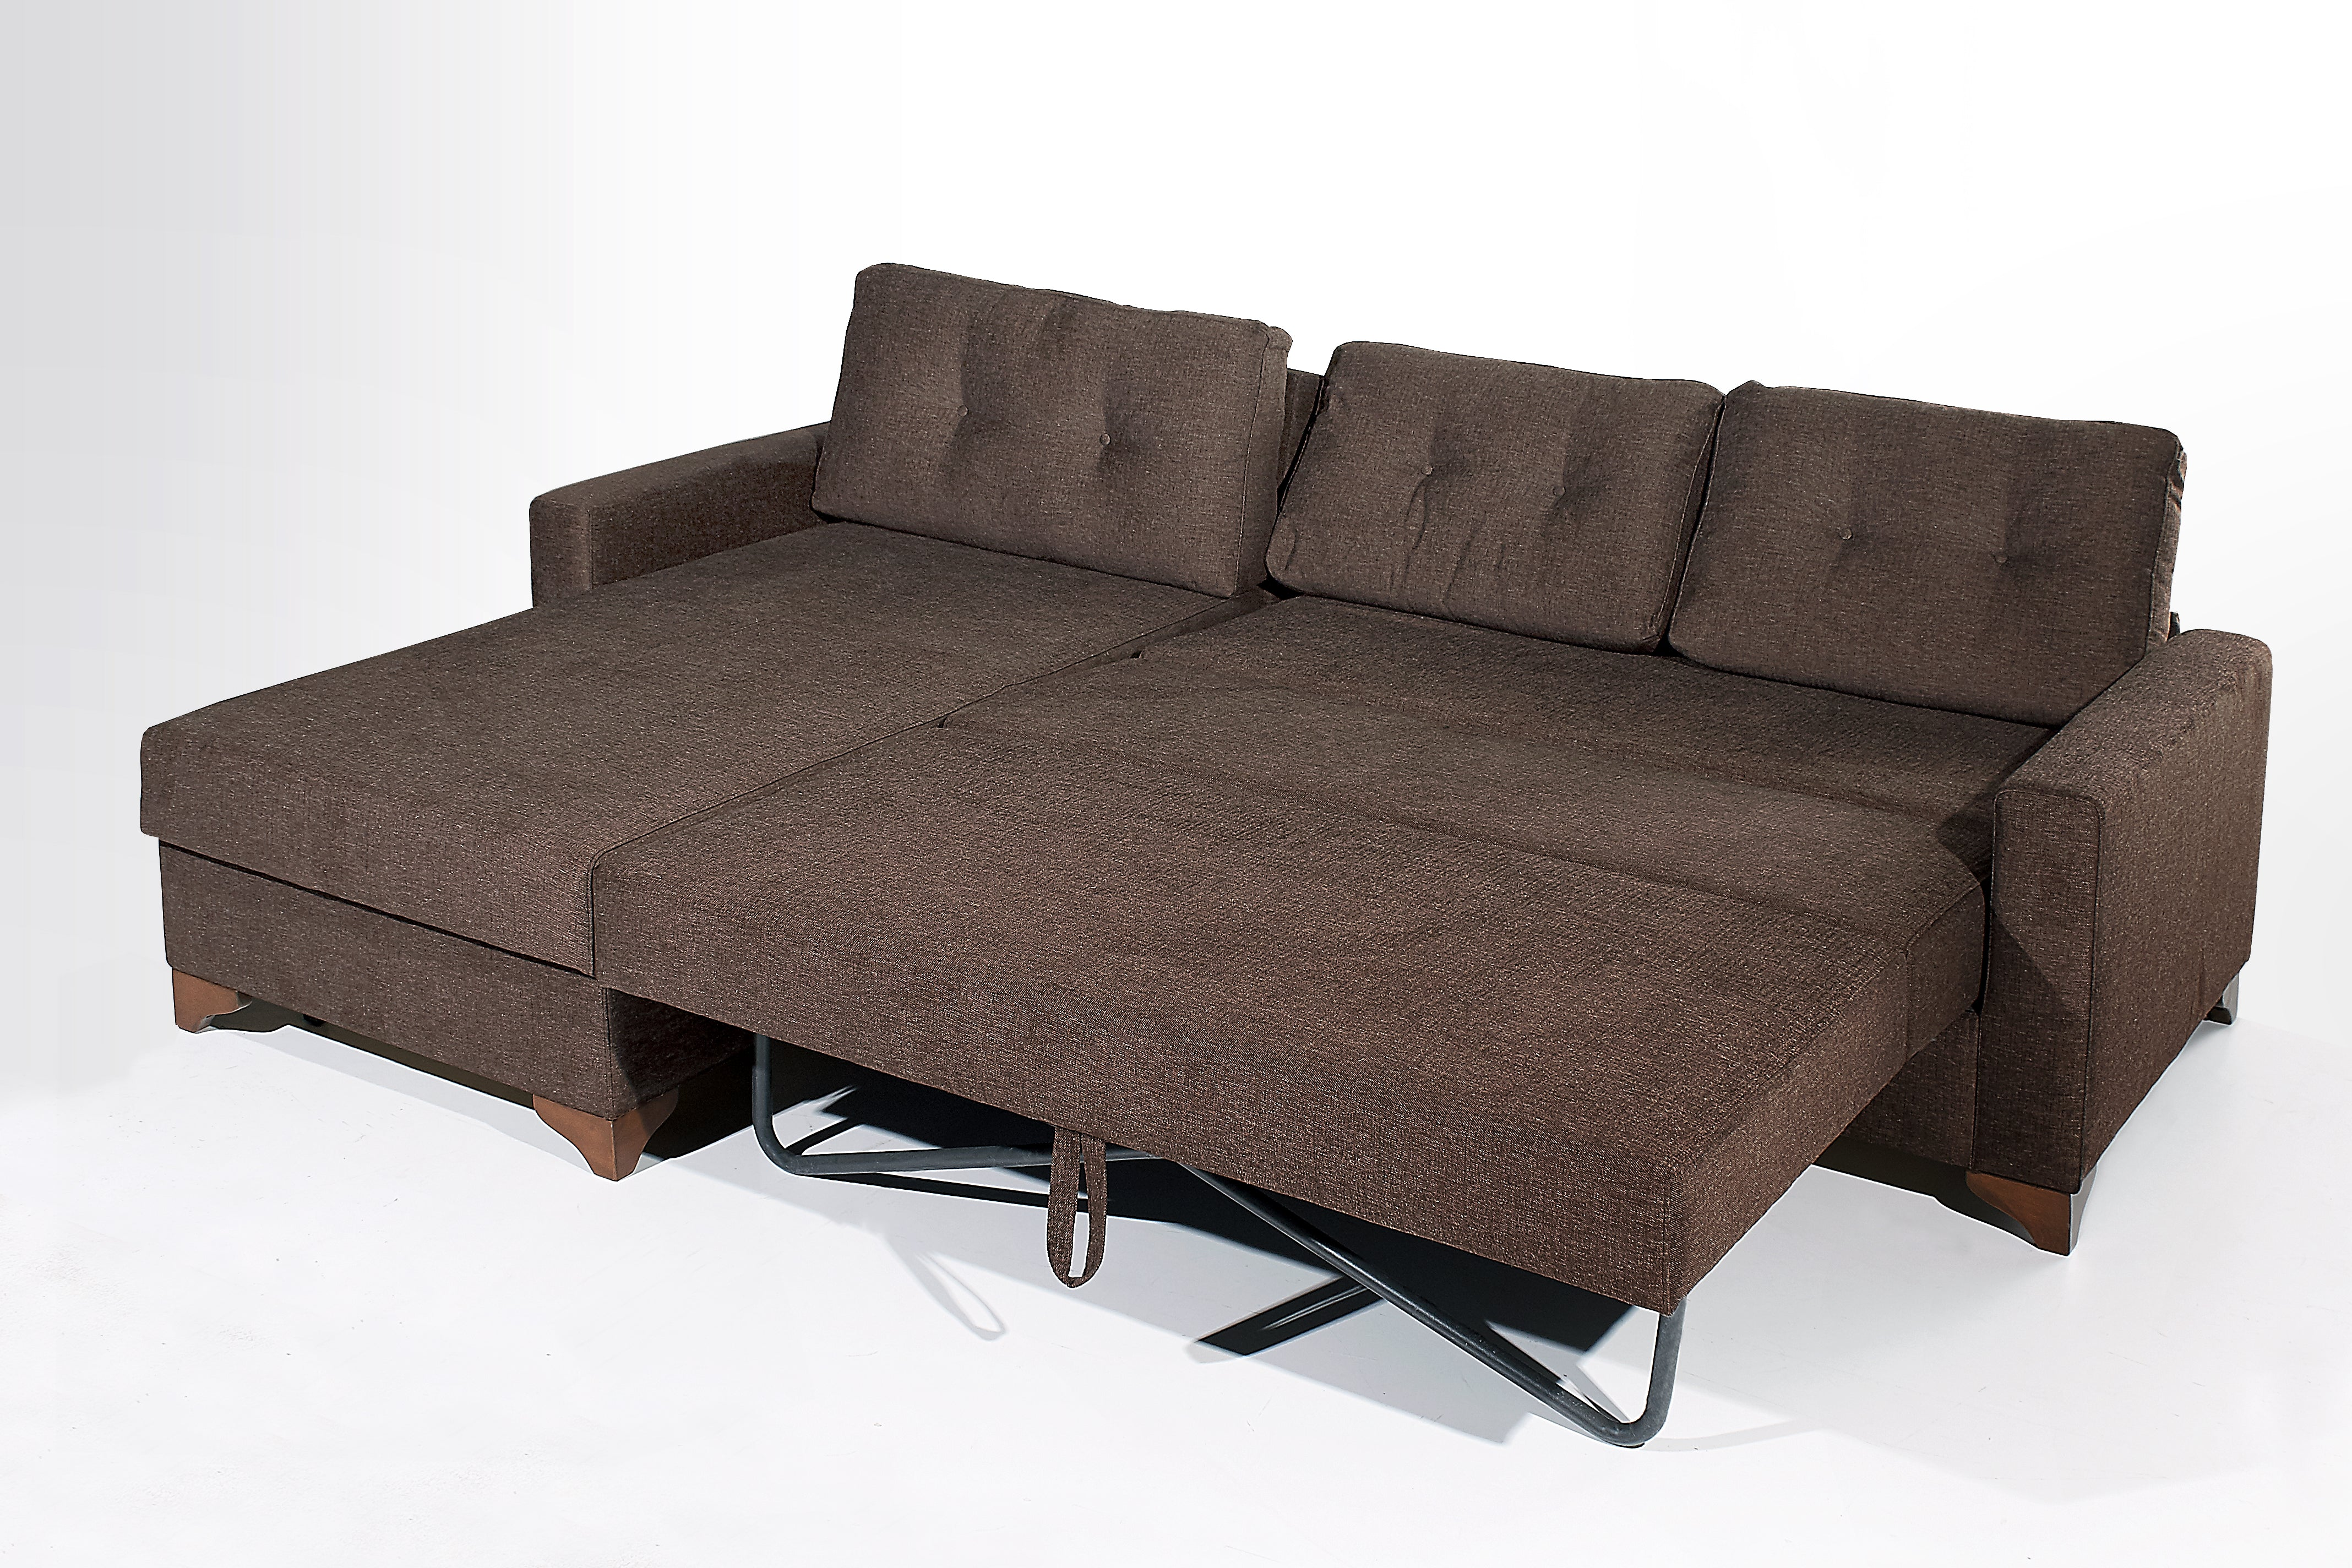 Gramercy Sectional Sofa Bed RIGHT SIDED The Smart Sofa